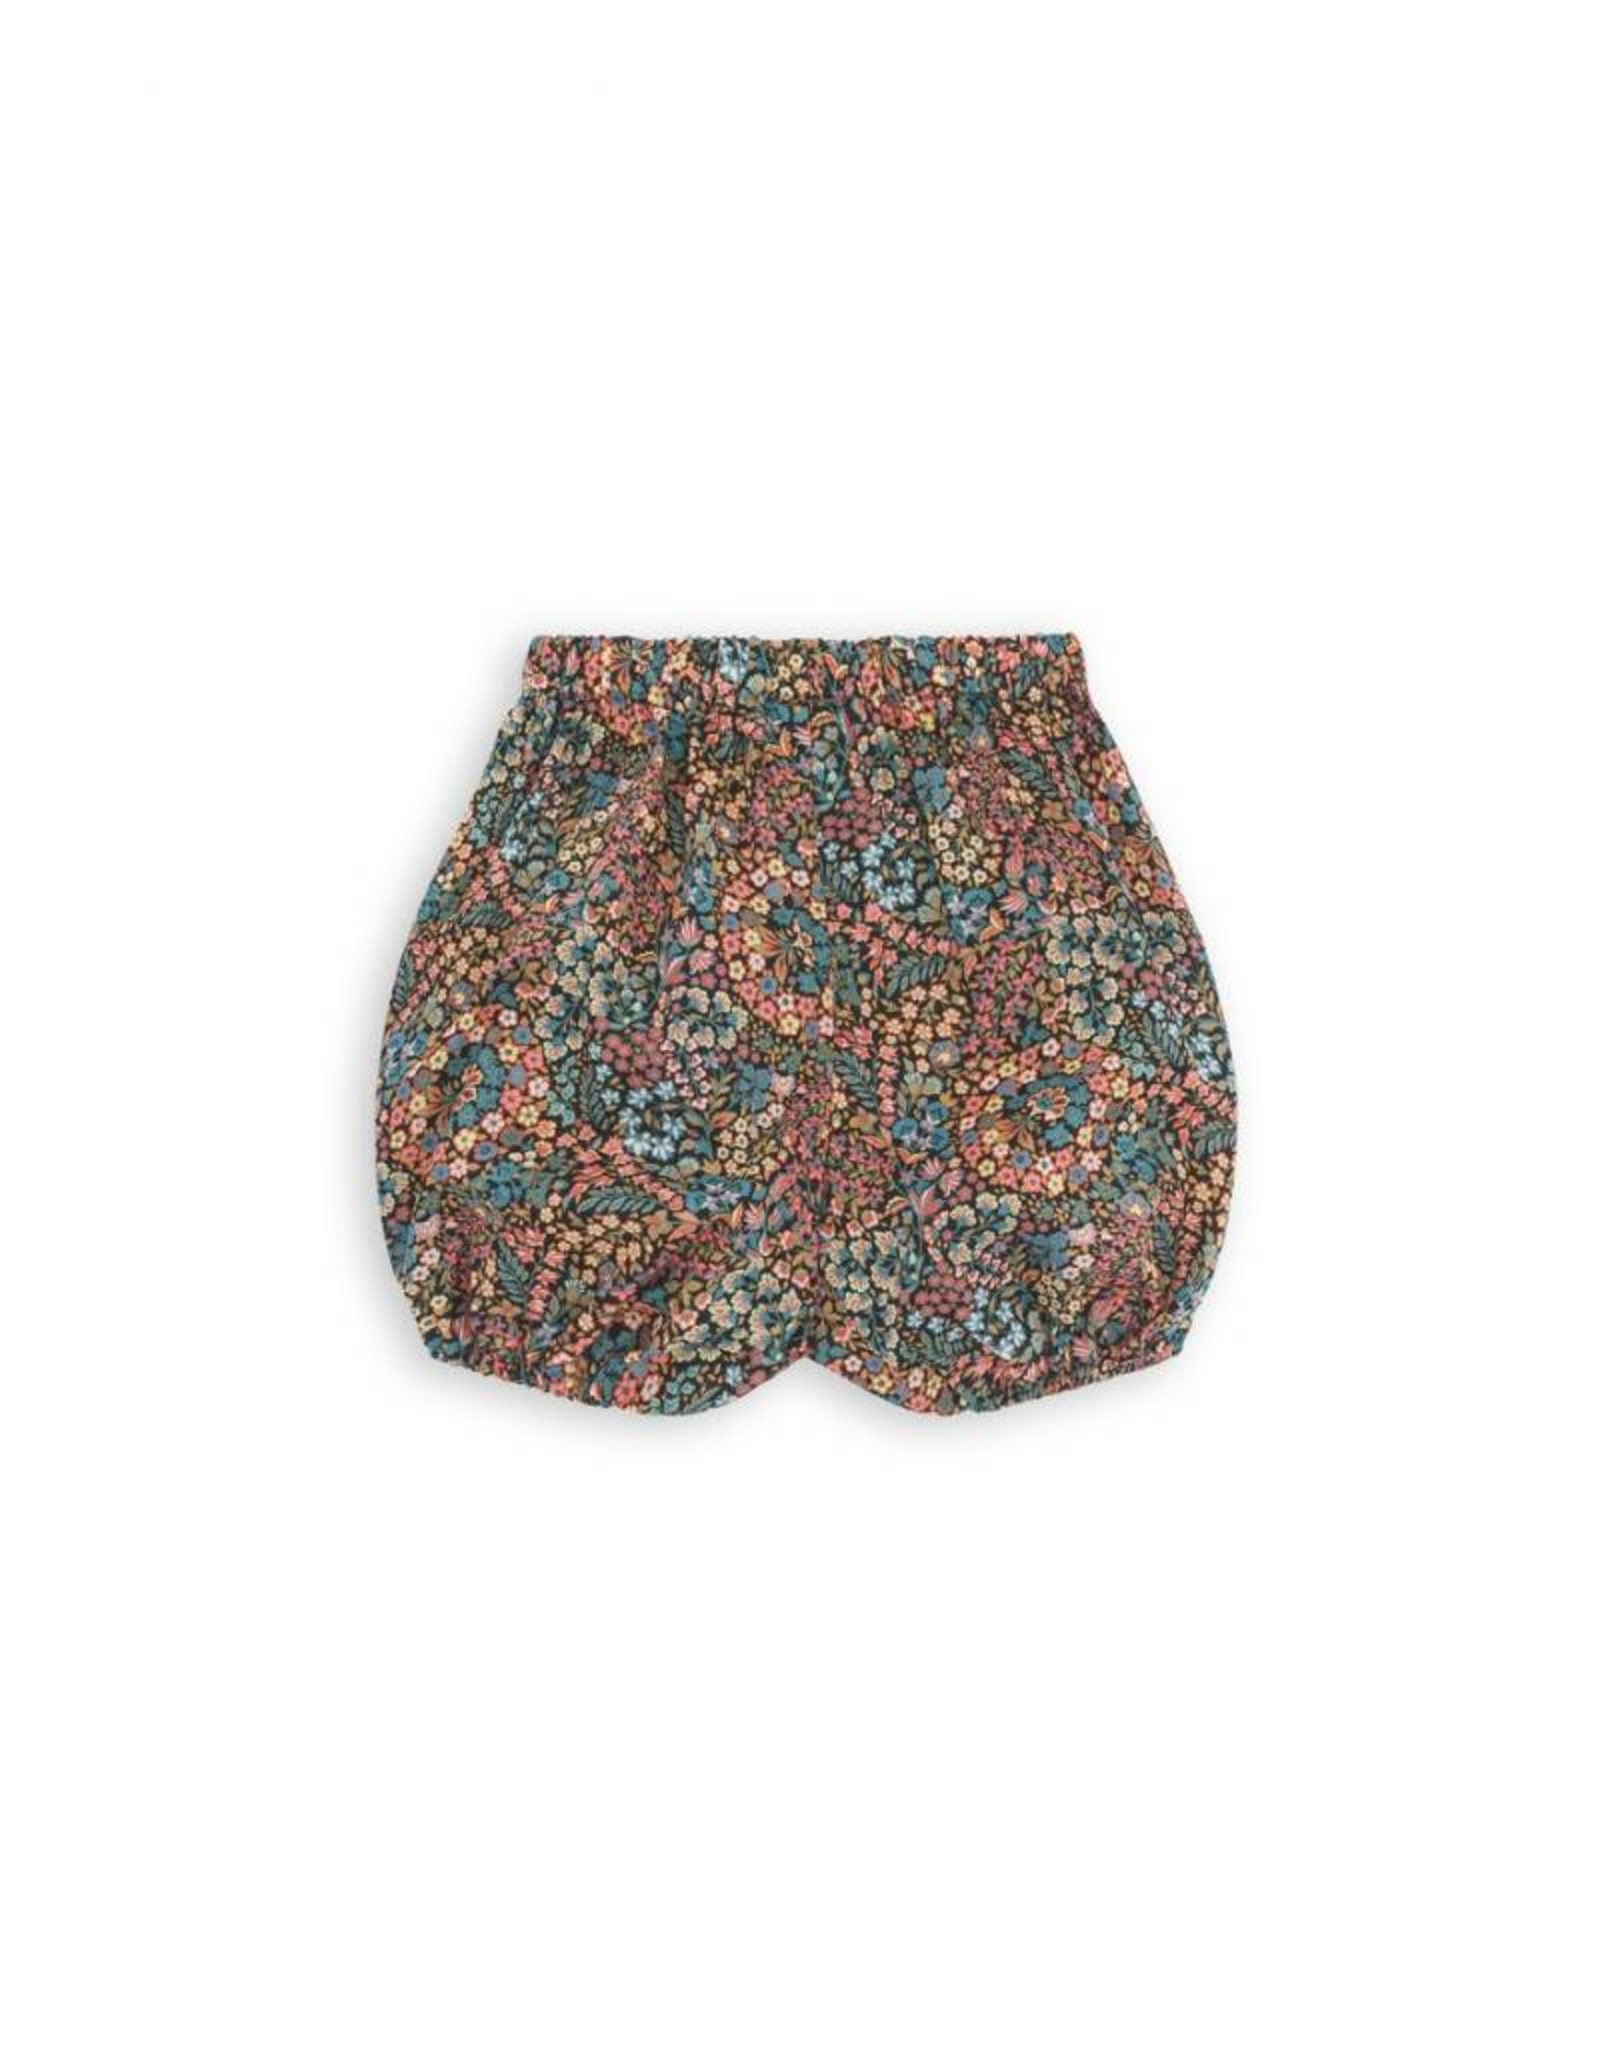 Bloomer, Liberty print